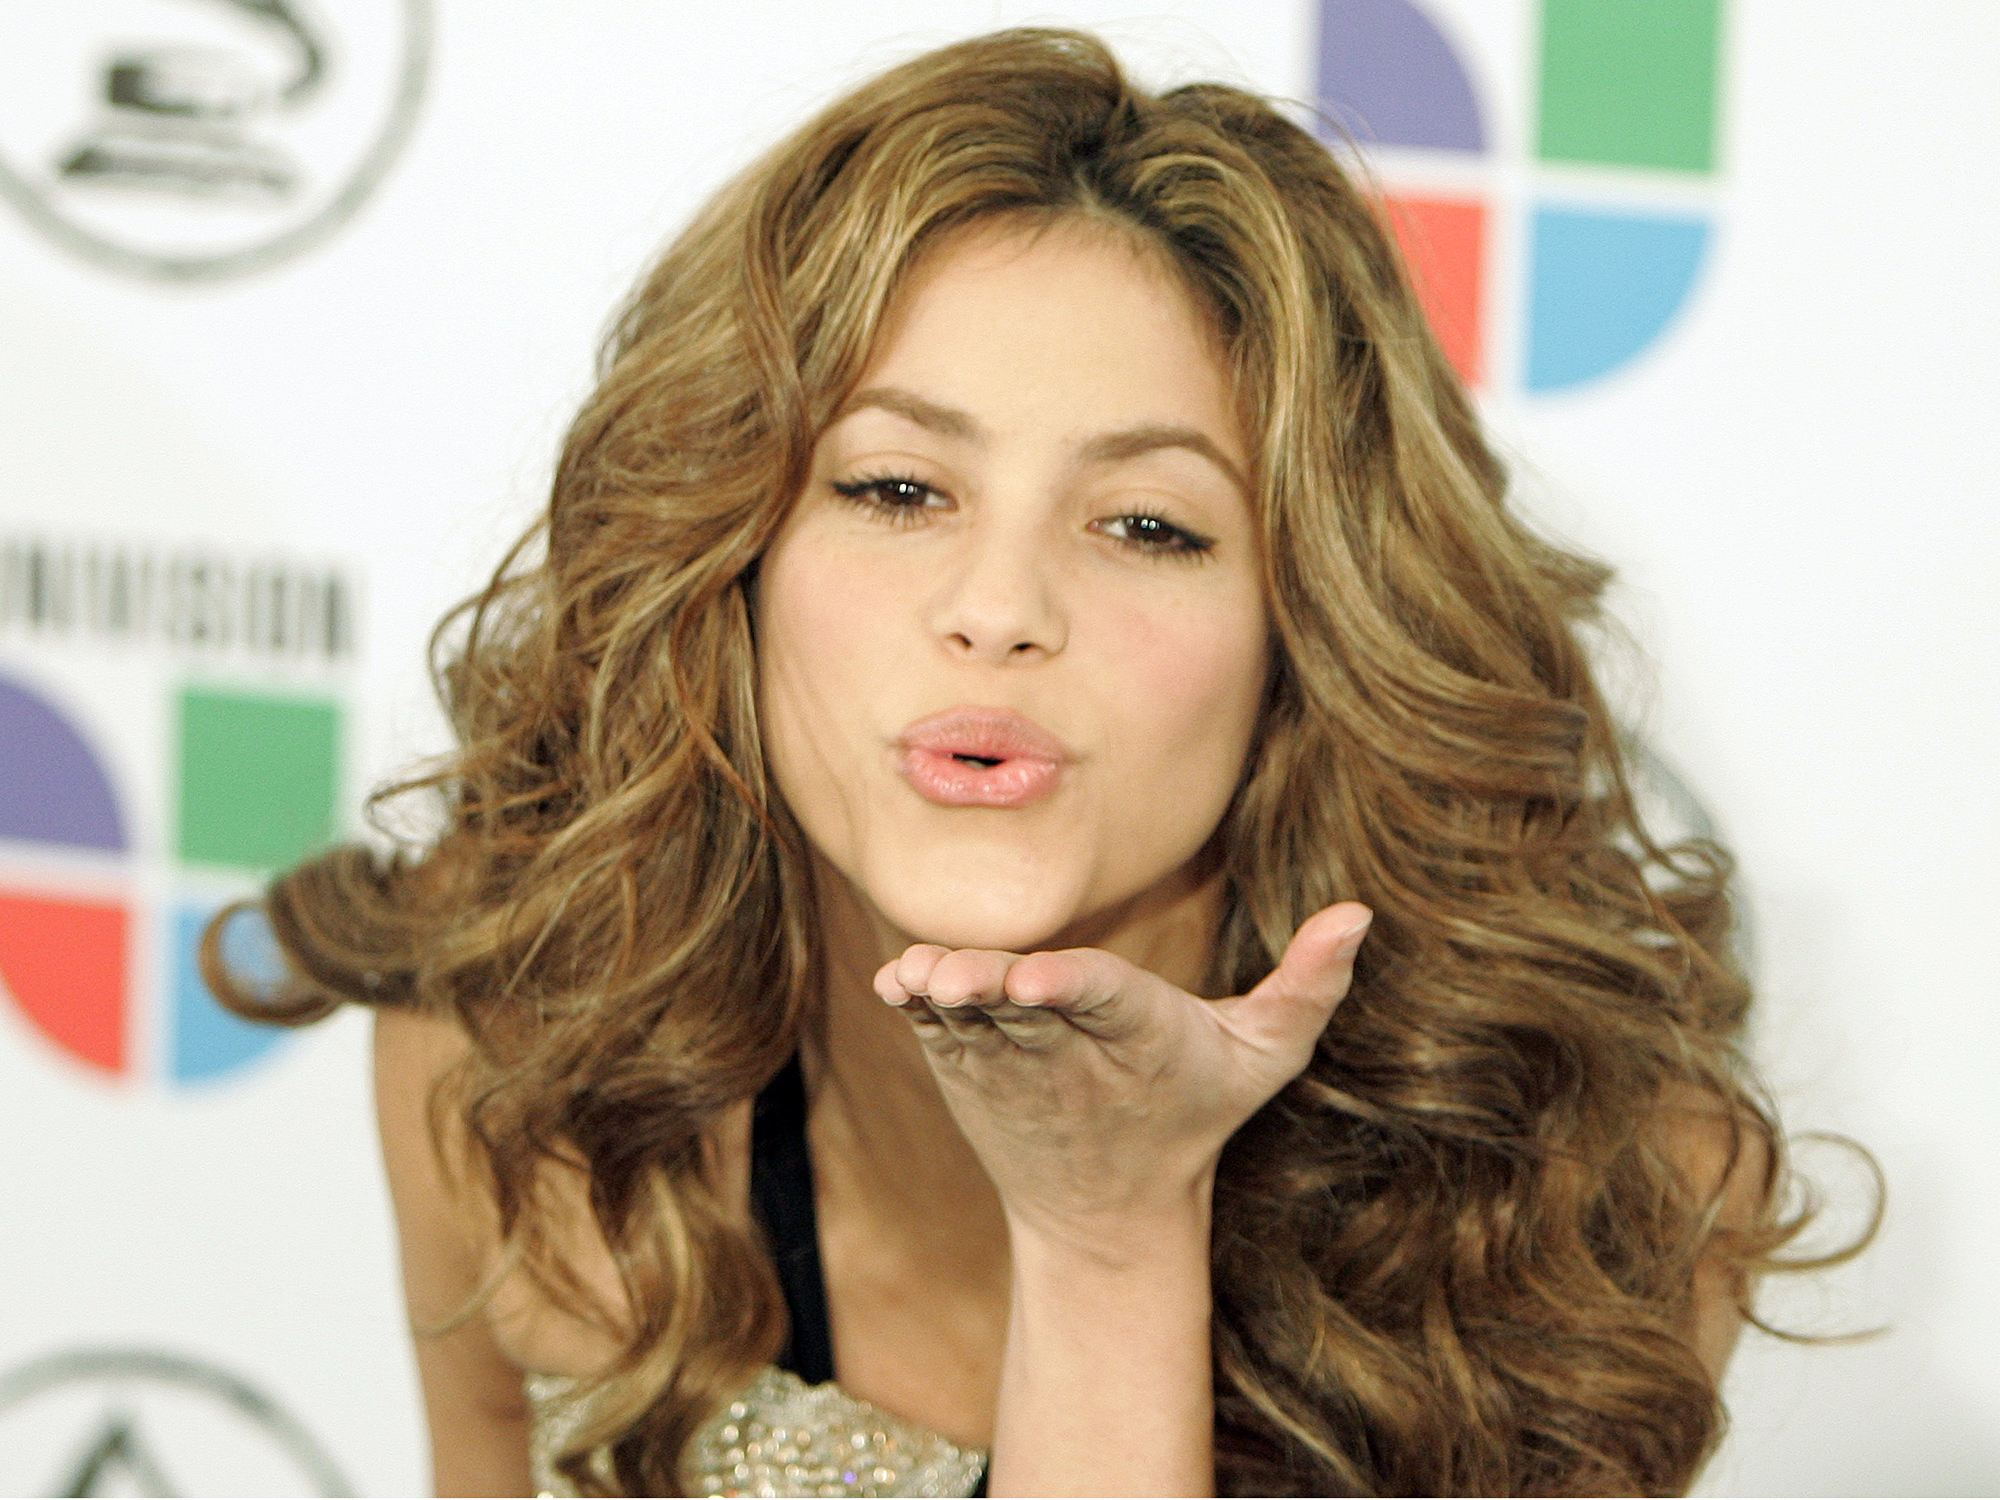 shakira mebarak photo 901 of 1352 pics, wallpaper - photo #588588